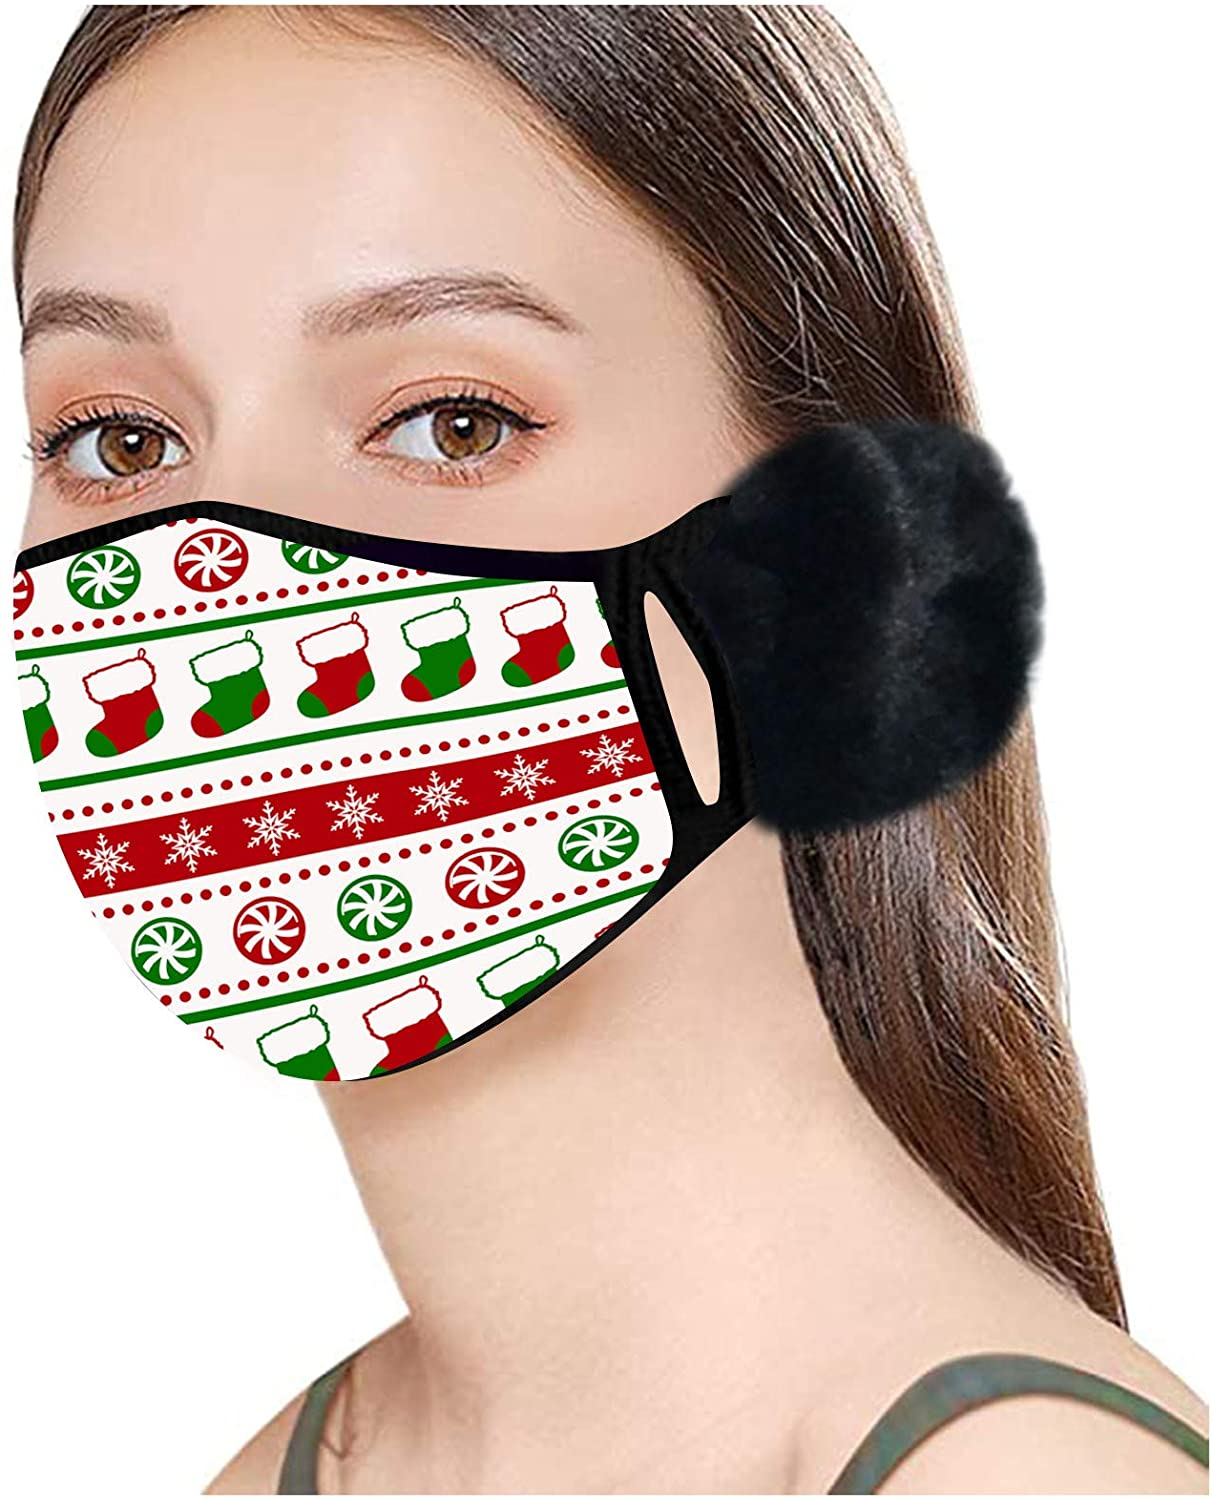 Unisex Christmas mask Face Mask Reusable Printing Mask Funny mask 1pc for Glowing Nightclub Party 1pc